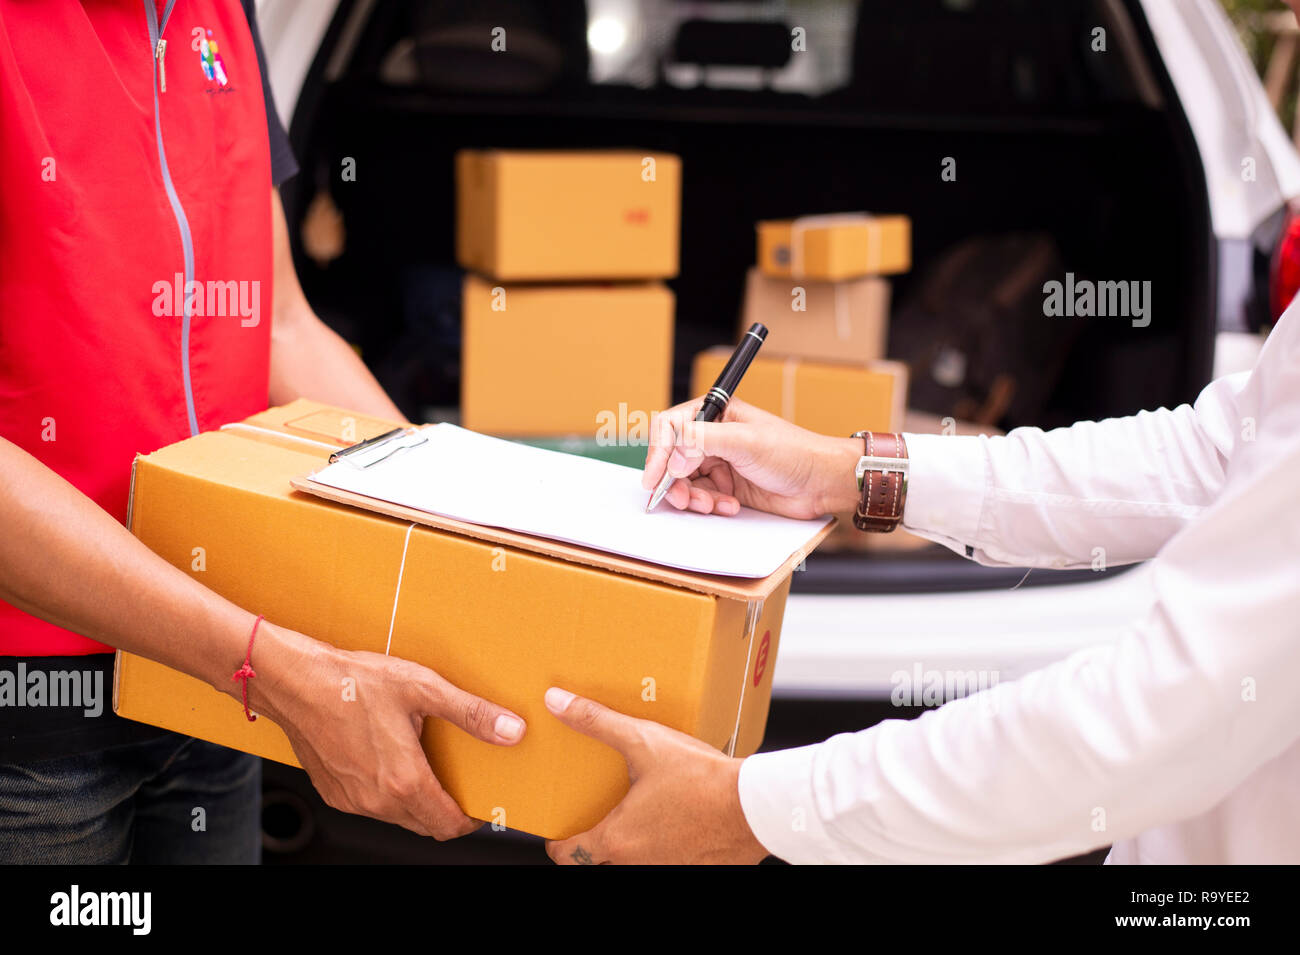 Asian young man and delivery worker are signing documents for send parcels, cardboard boxes in the background - Image - Stock Image